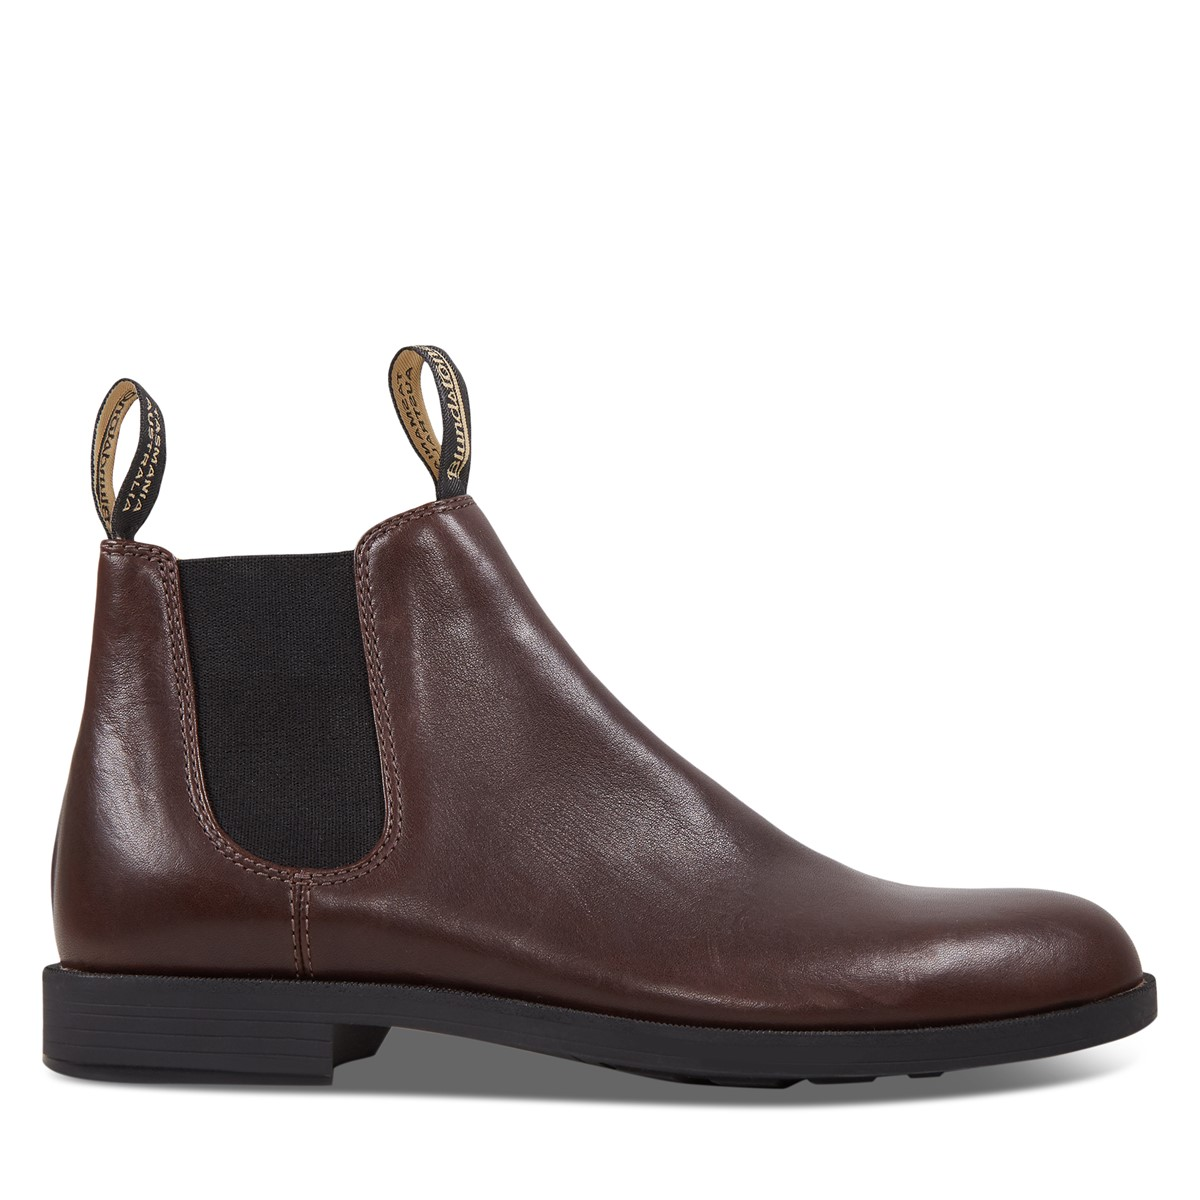 Men's 1900 Chelsea Boots in Dark Red